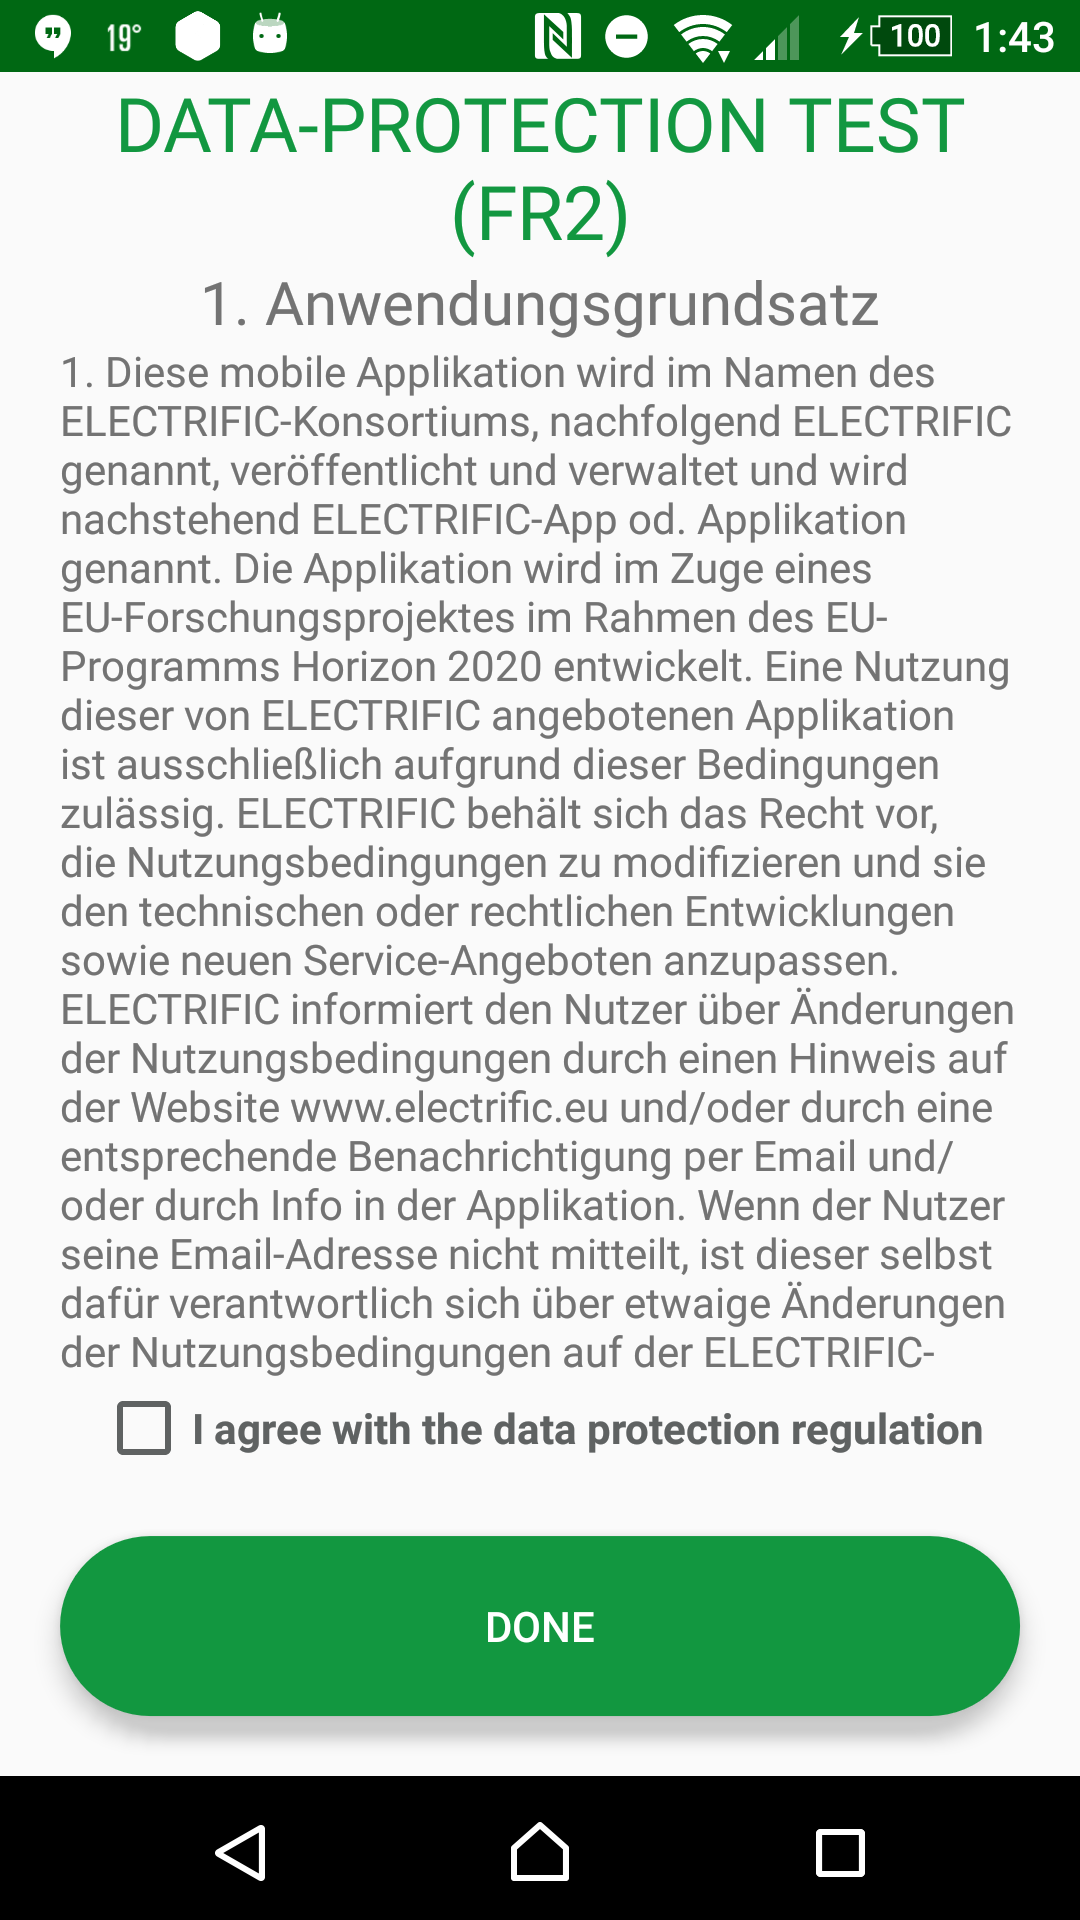 Terms & conditions GER check